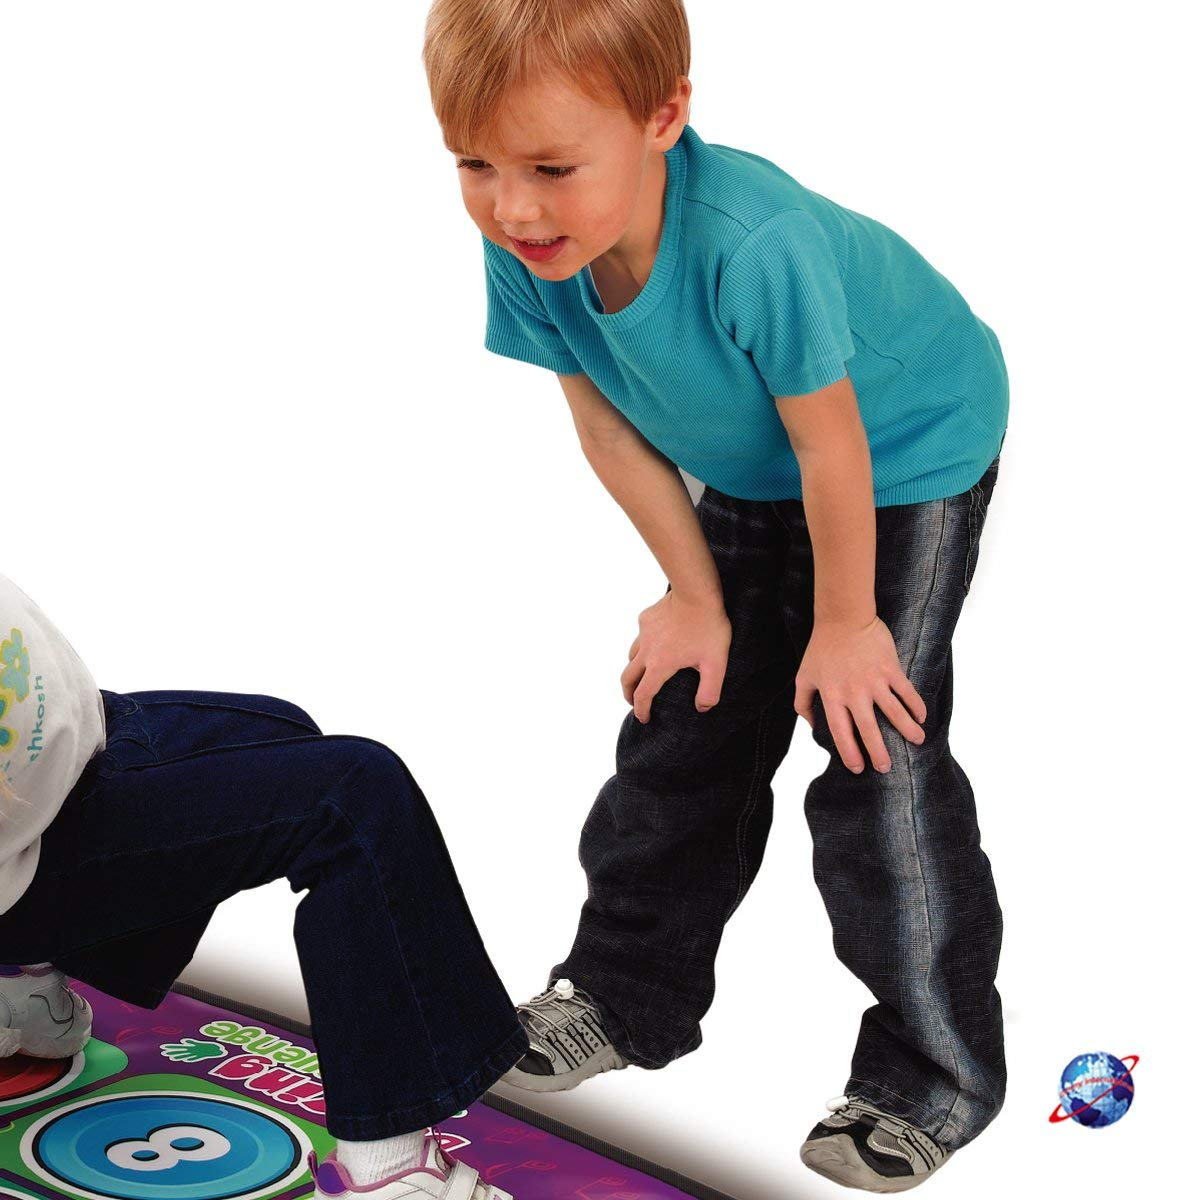 WEWE Wireless Dance Pad,Children Game Fitness Dance Mat Double Foldable Dance Revolution Hd Tv Computer Dual-d 165x95cm(65x37inch) by WEWE (Image #2)